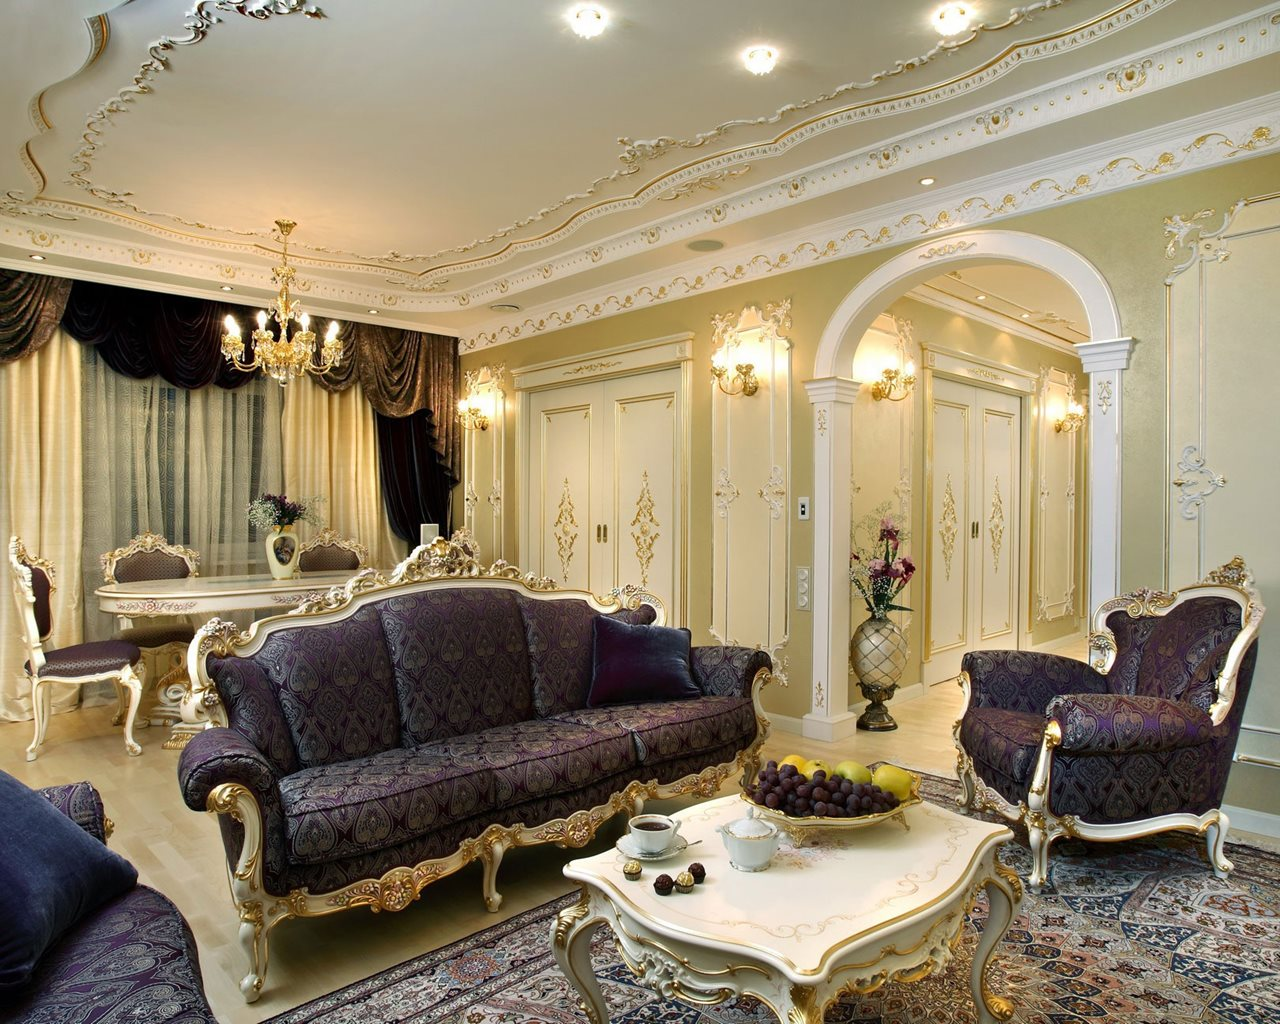 Baroque style interior design ideas for Image interior design living room